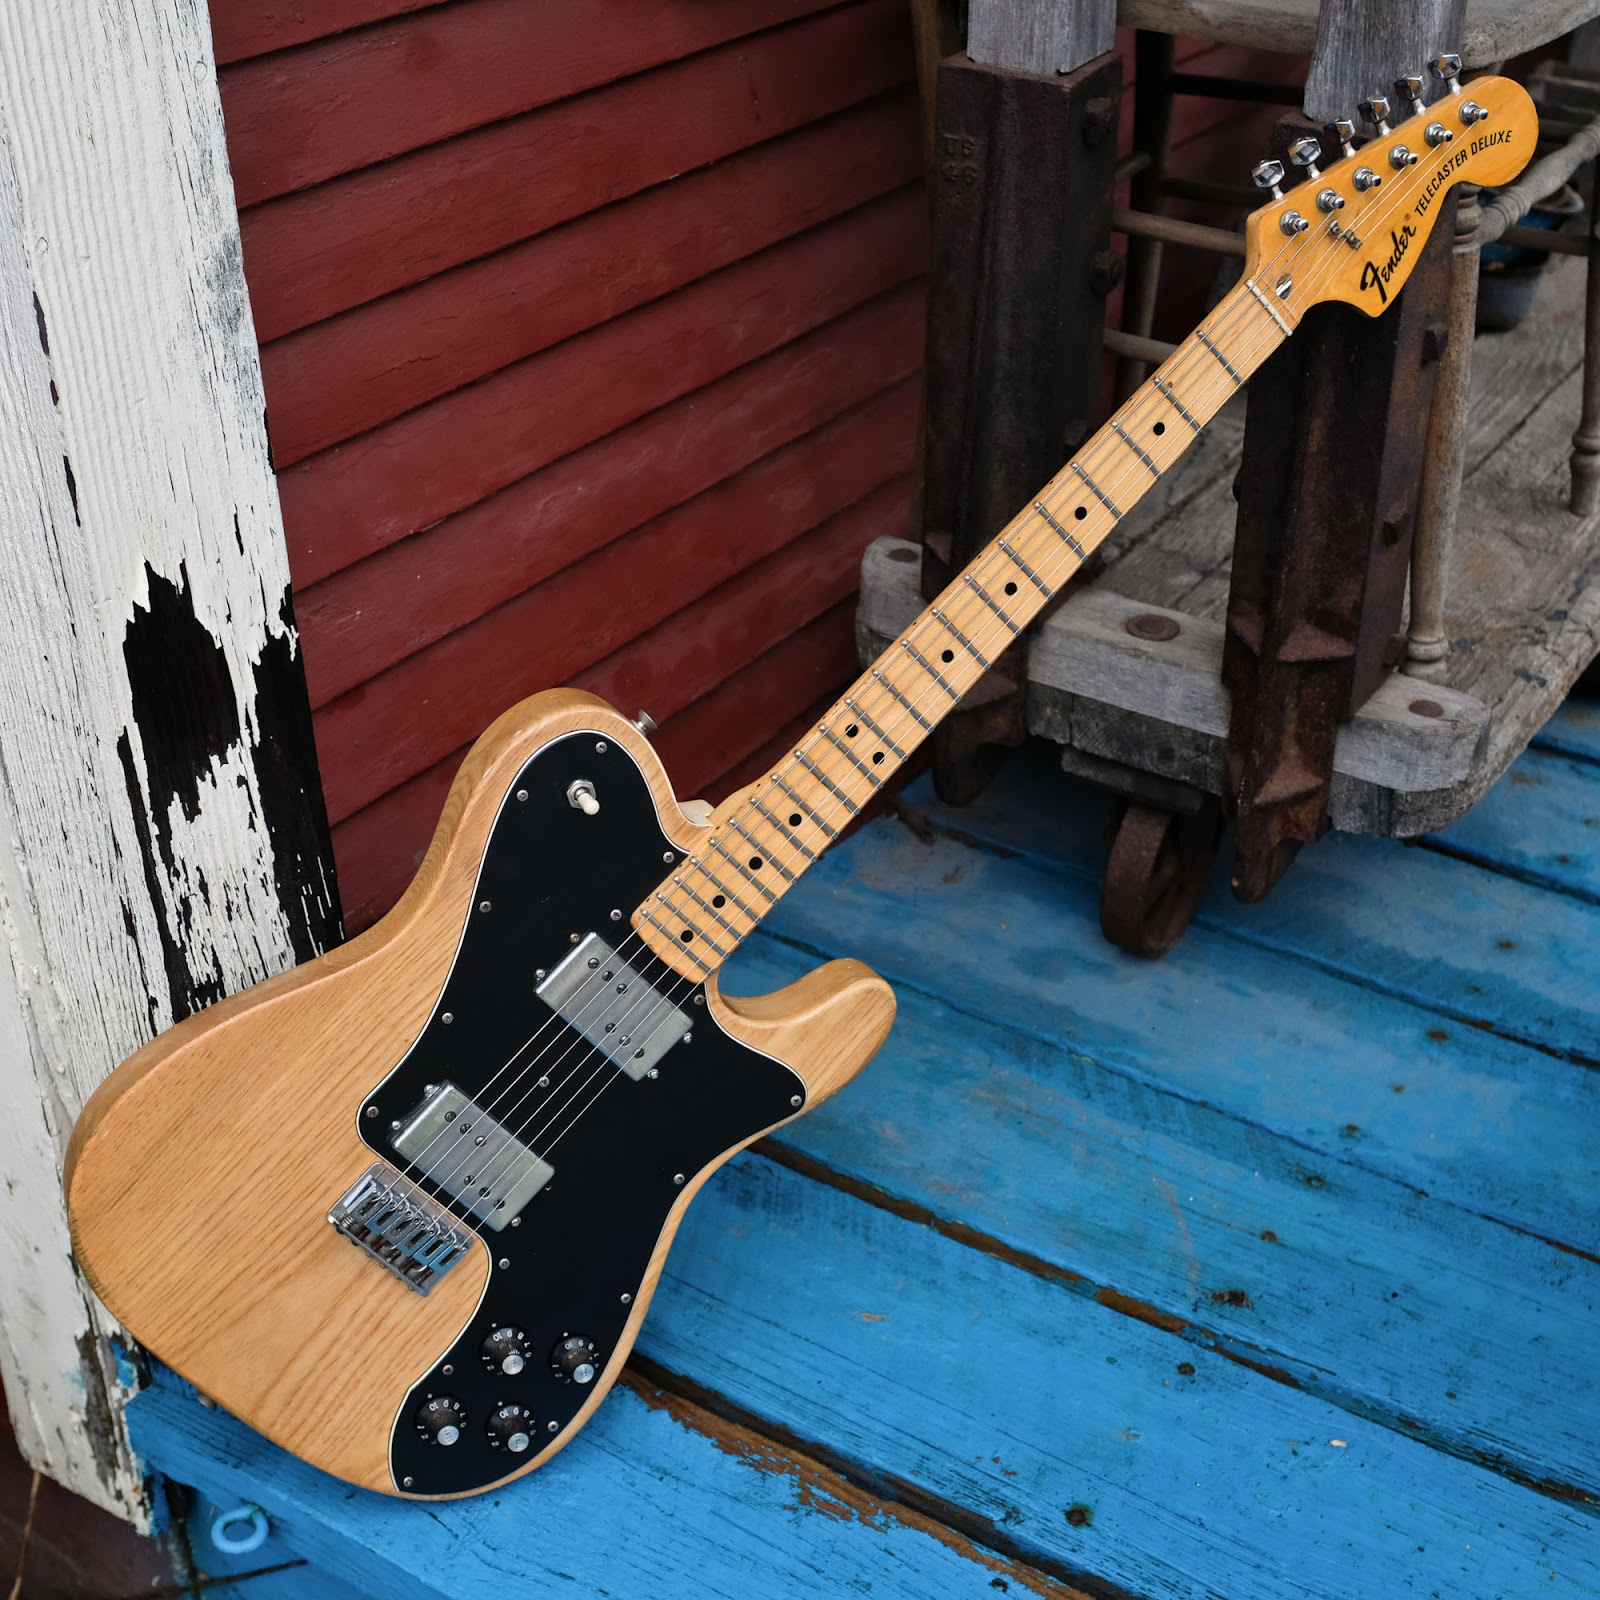 1973 fender telecaster deluxe electric